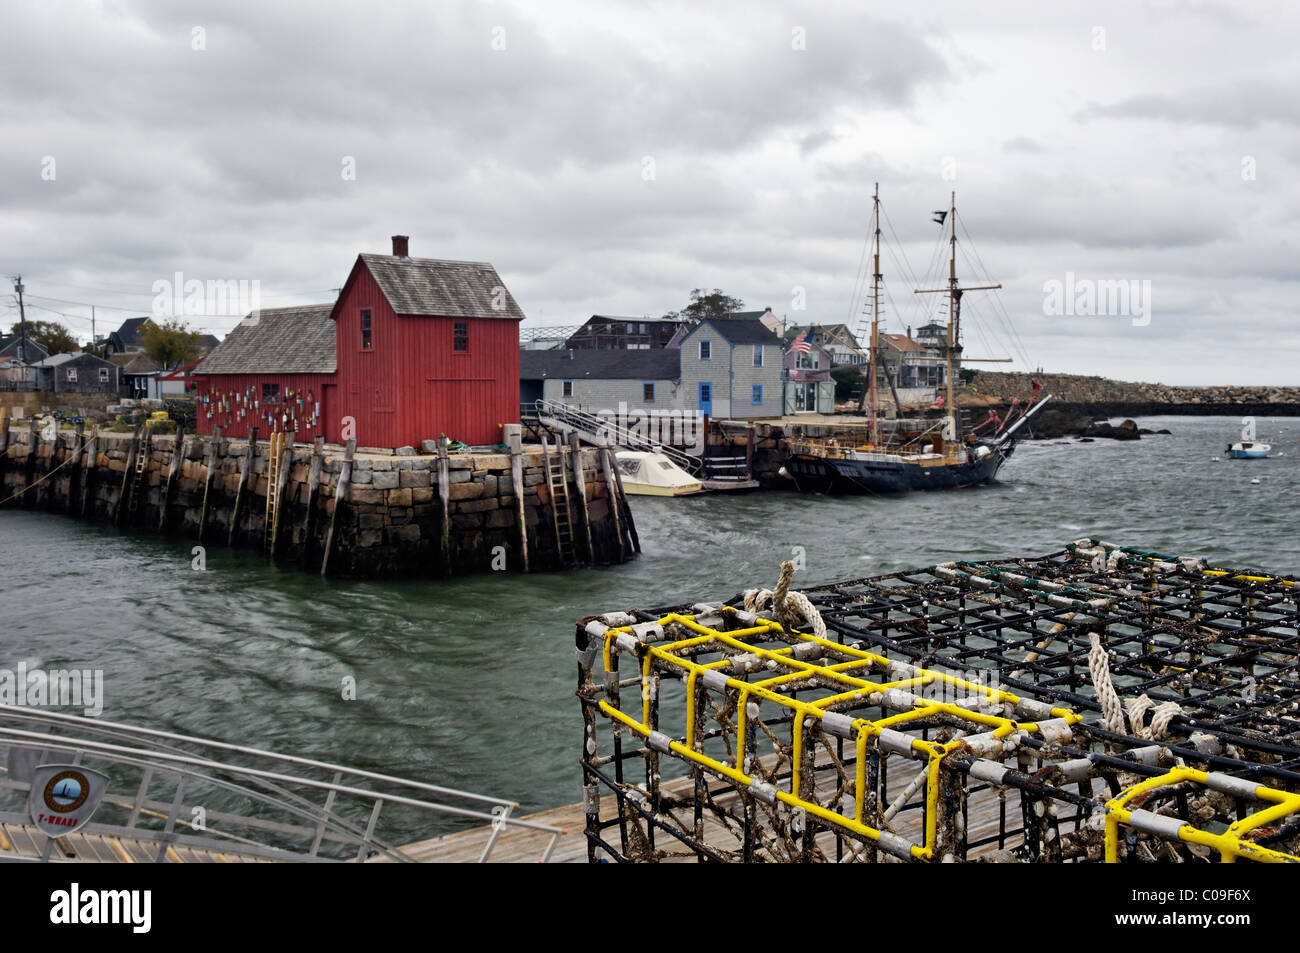 Lobster Traps, Motif Number 1 and Schooner at the Dock in Rockport, Massachusetts - Stock Image